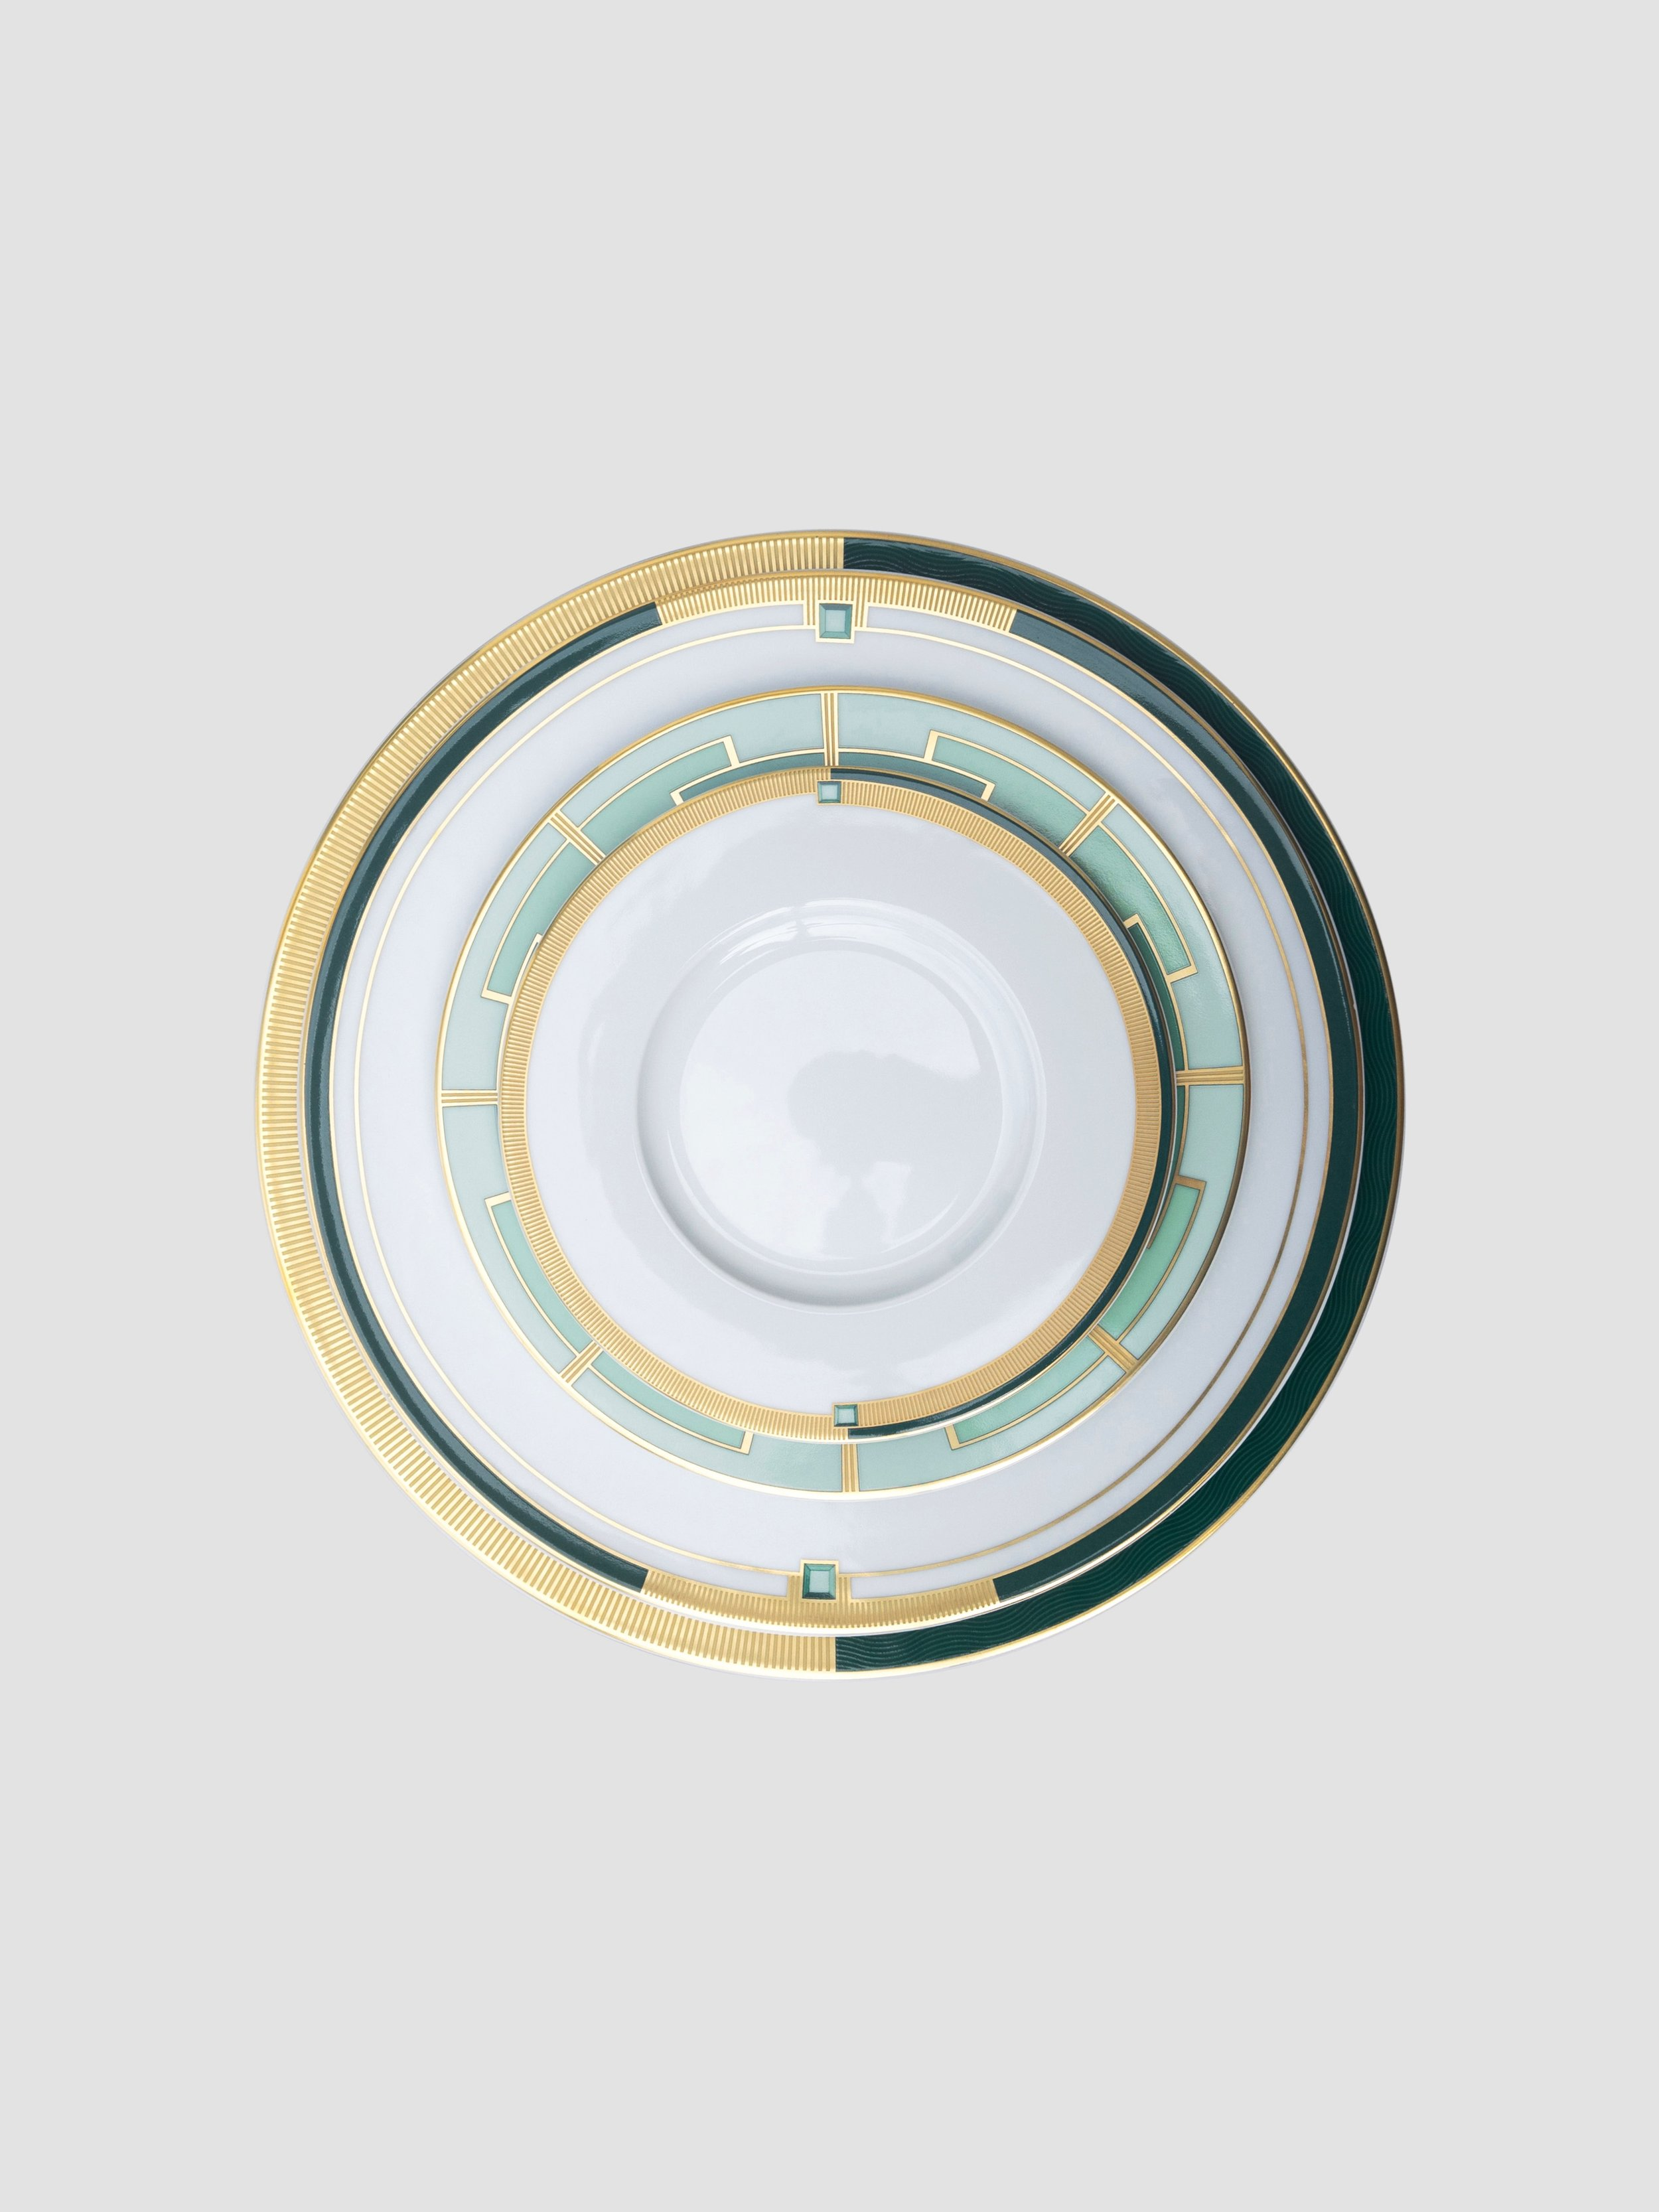 Harmonious emerald tones, a geometric palette and 24kt decal blend beautifully to compose this Art Deco movement.   Artistically crated in Portugal.